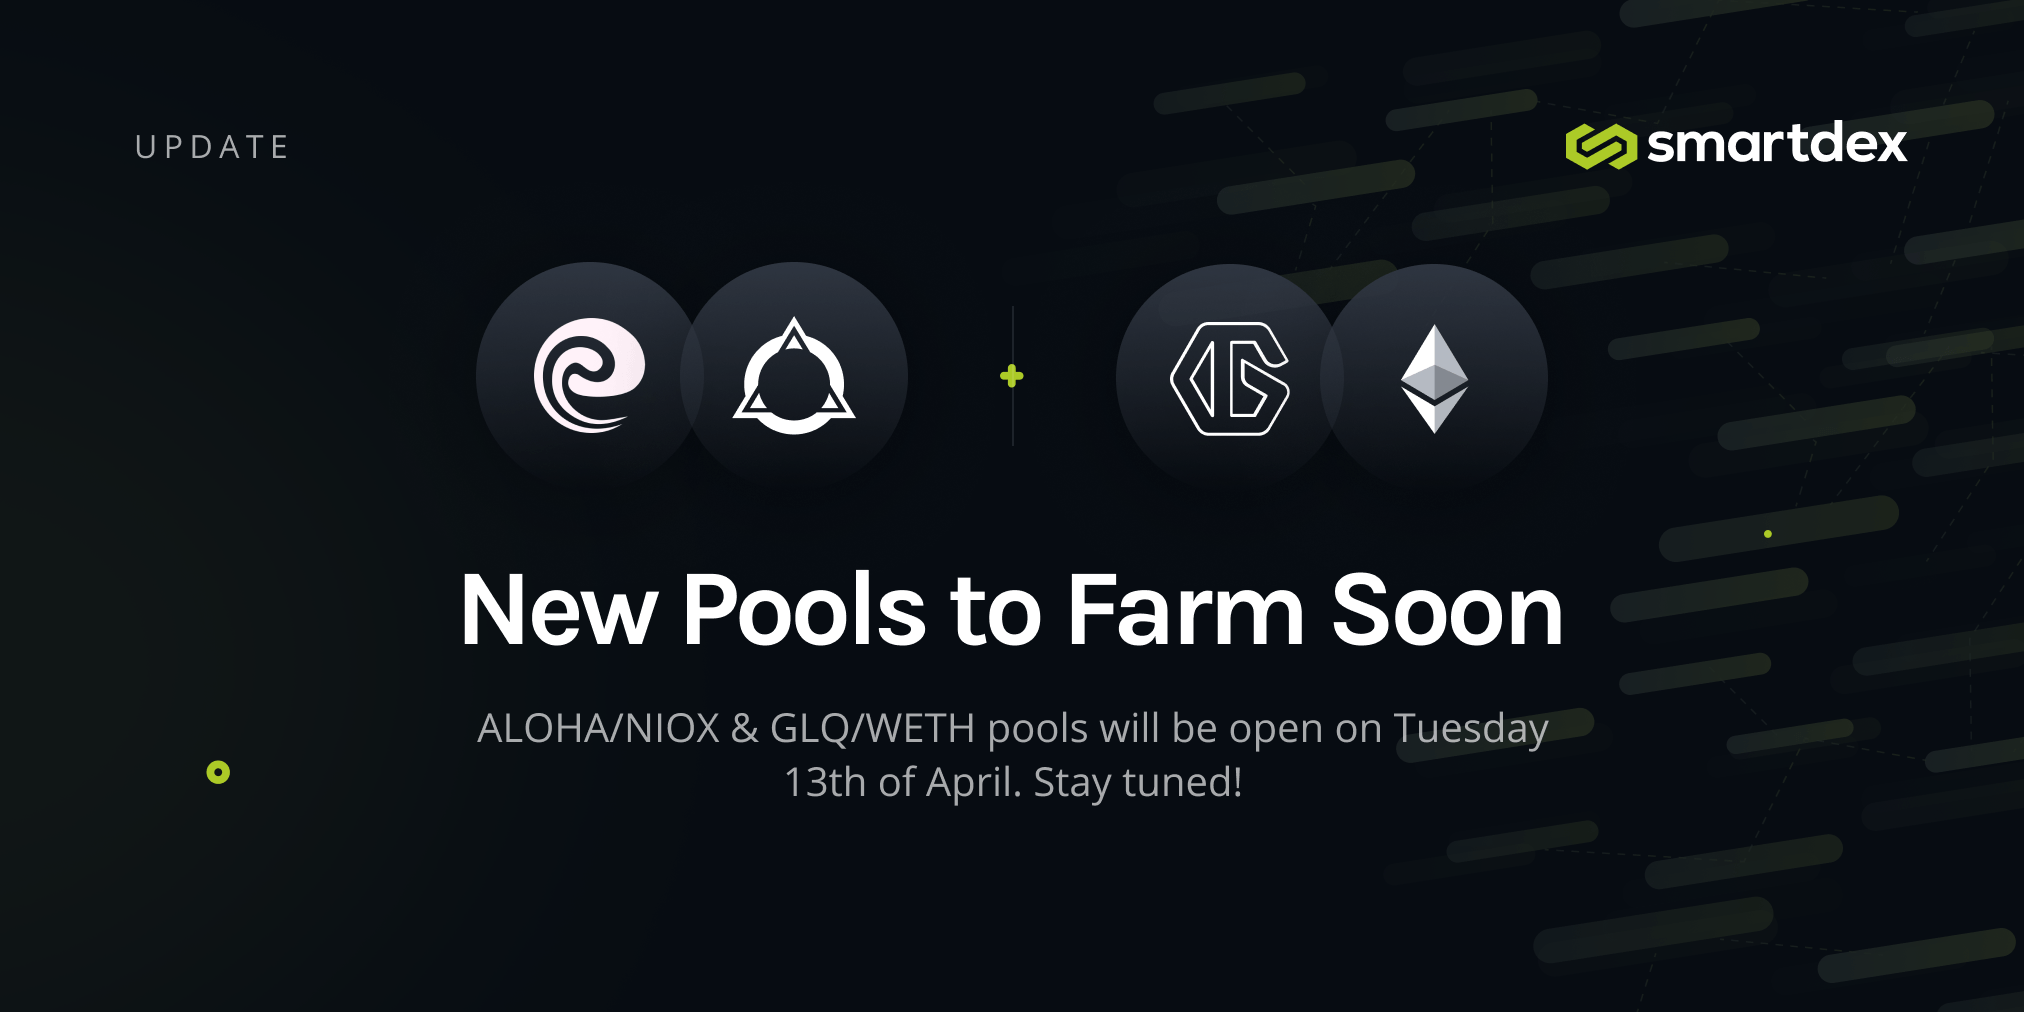 Two New Pools to Trade and to Farm